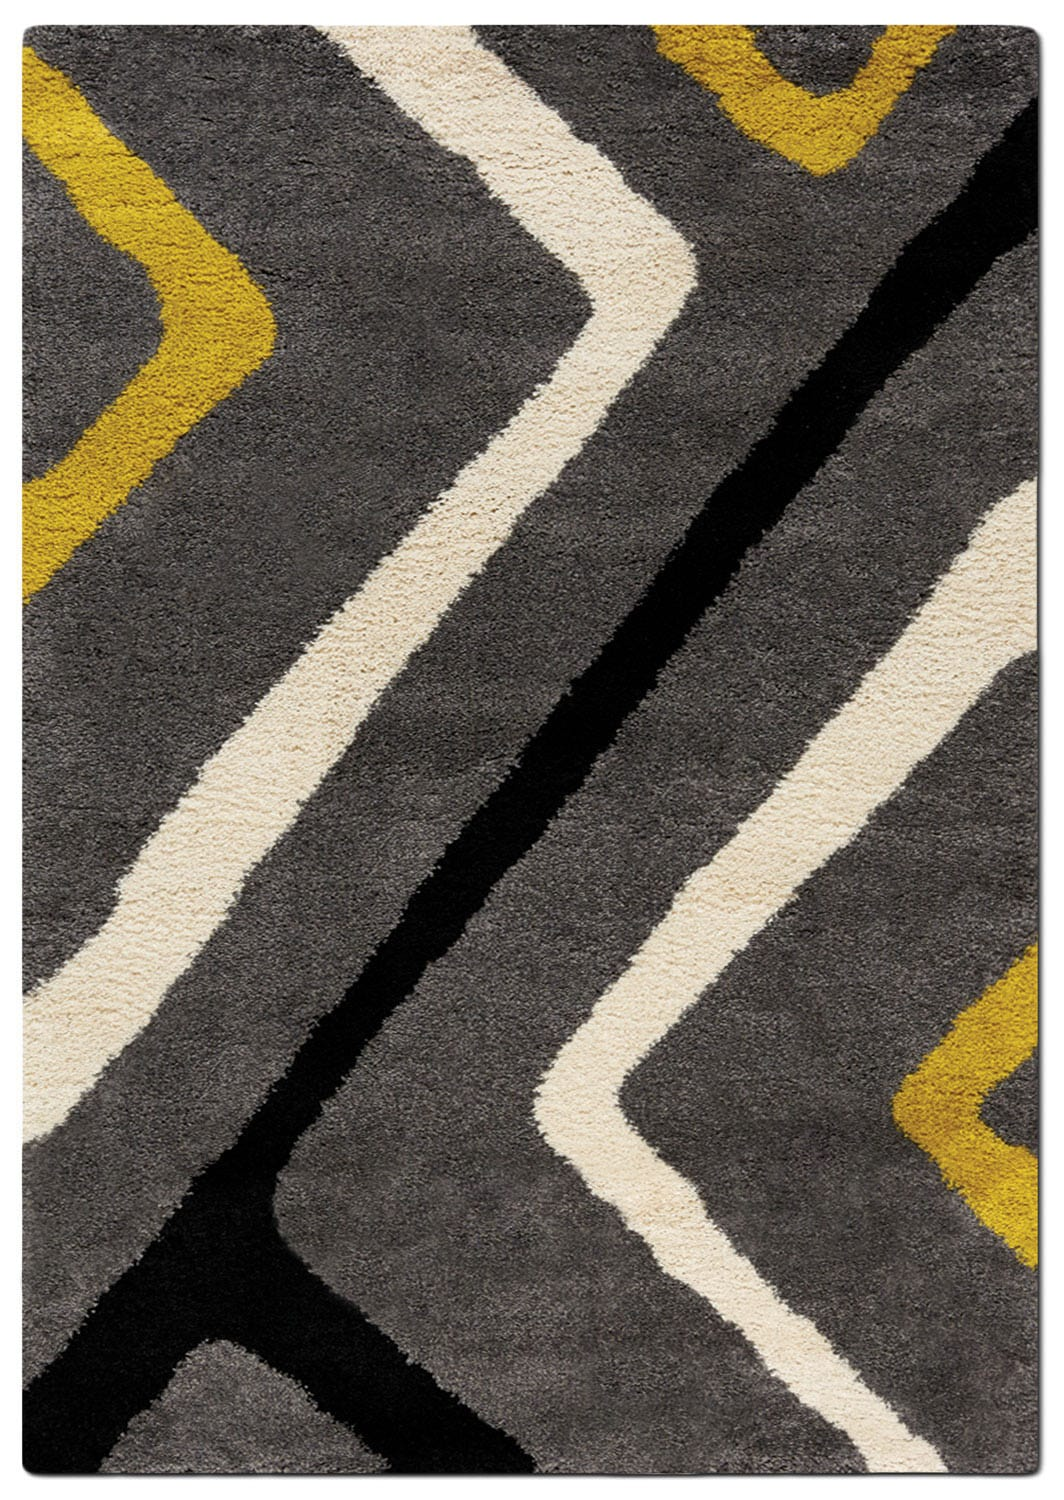 Rugs - Maroq 5' x 8' Area Rug - Grey